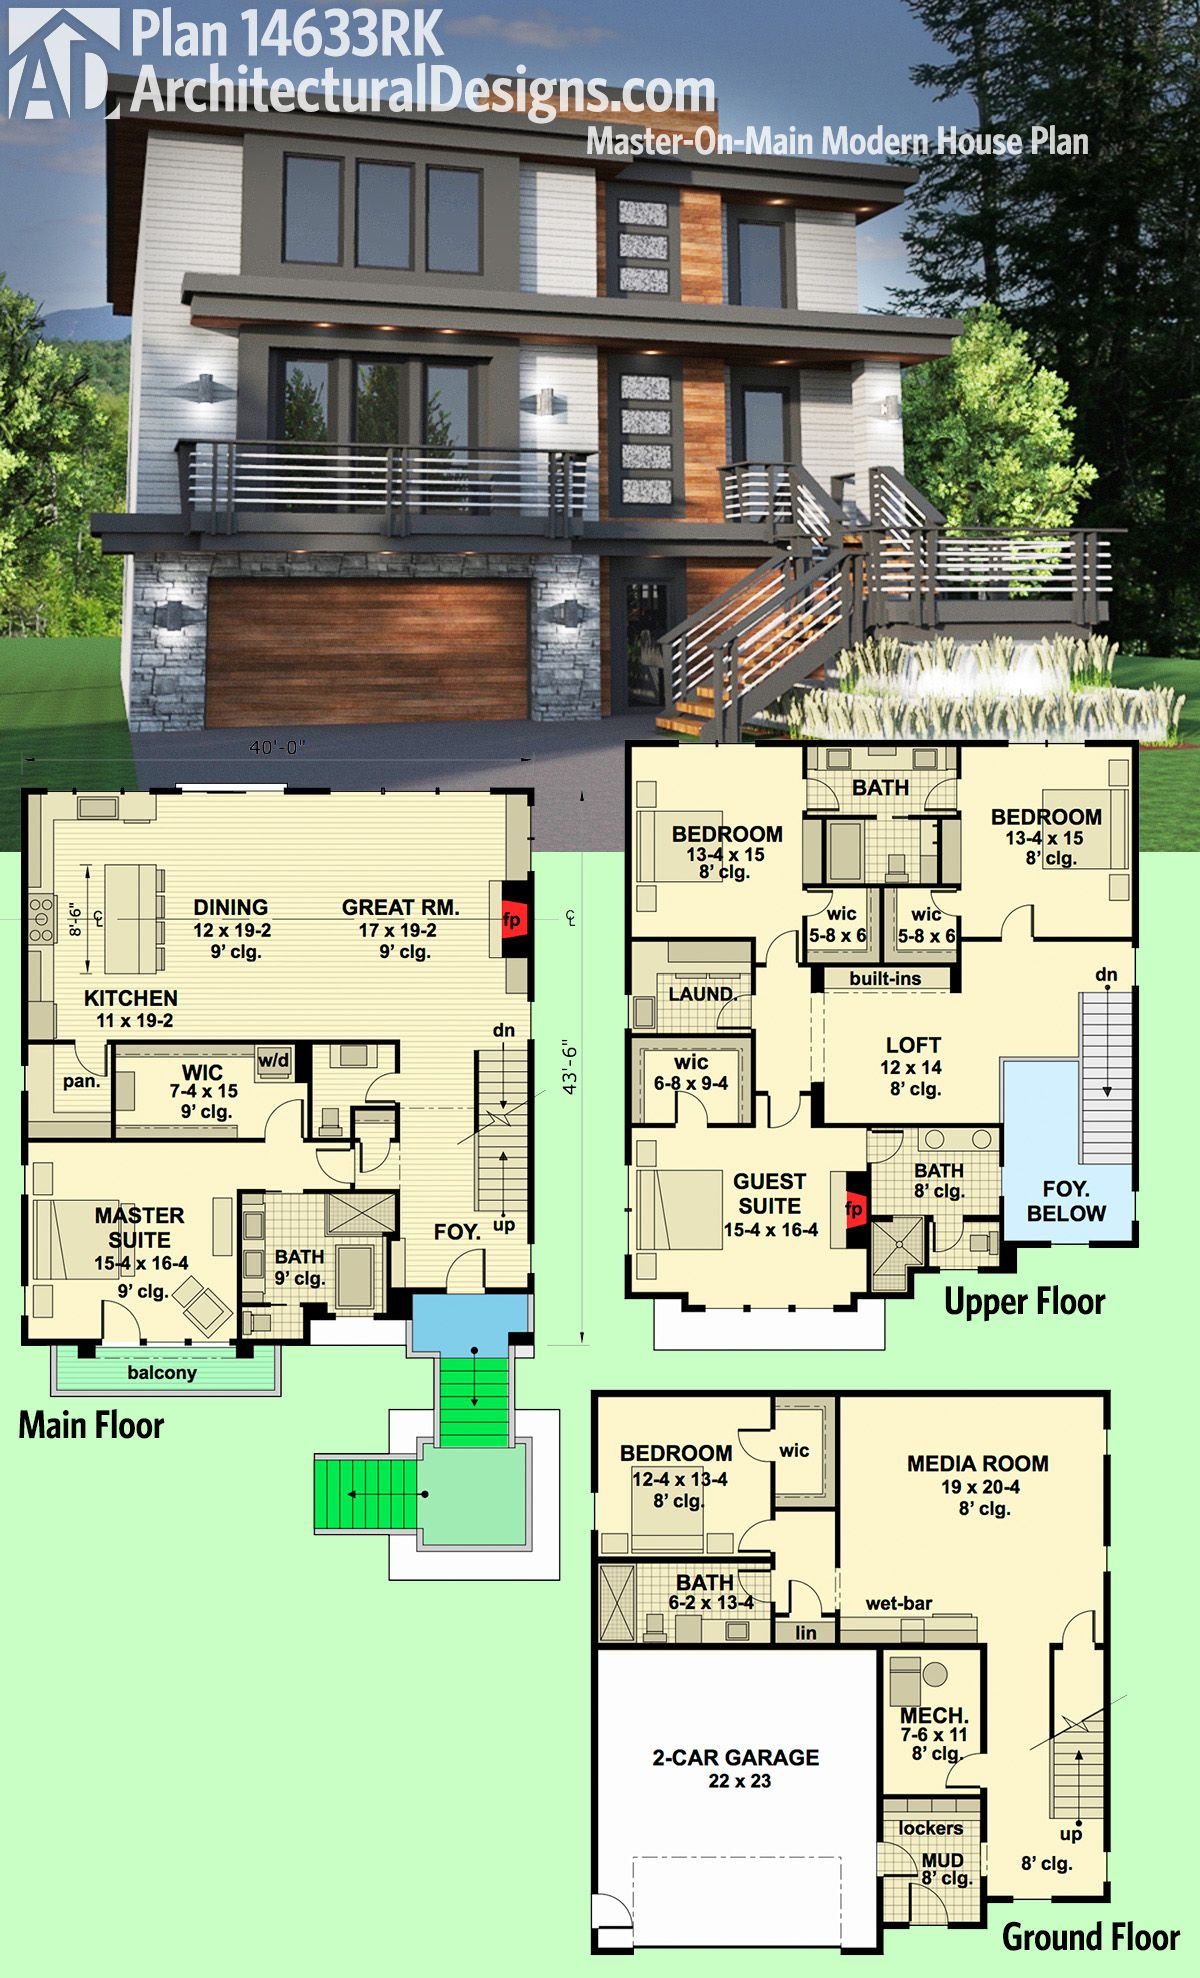 Plan 14633rk master on main modern house plan modern for House plans master on main